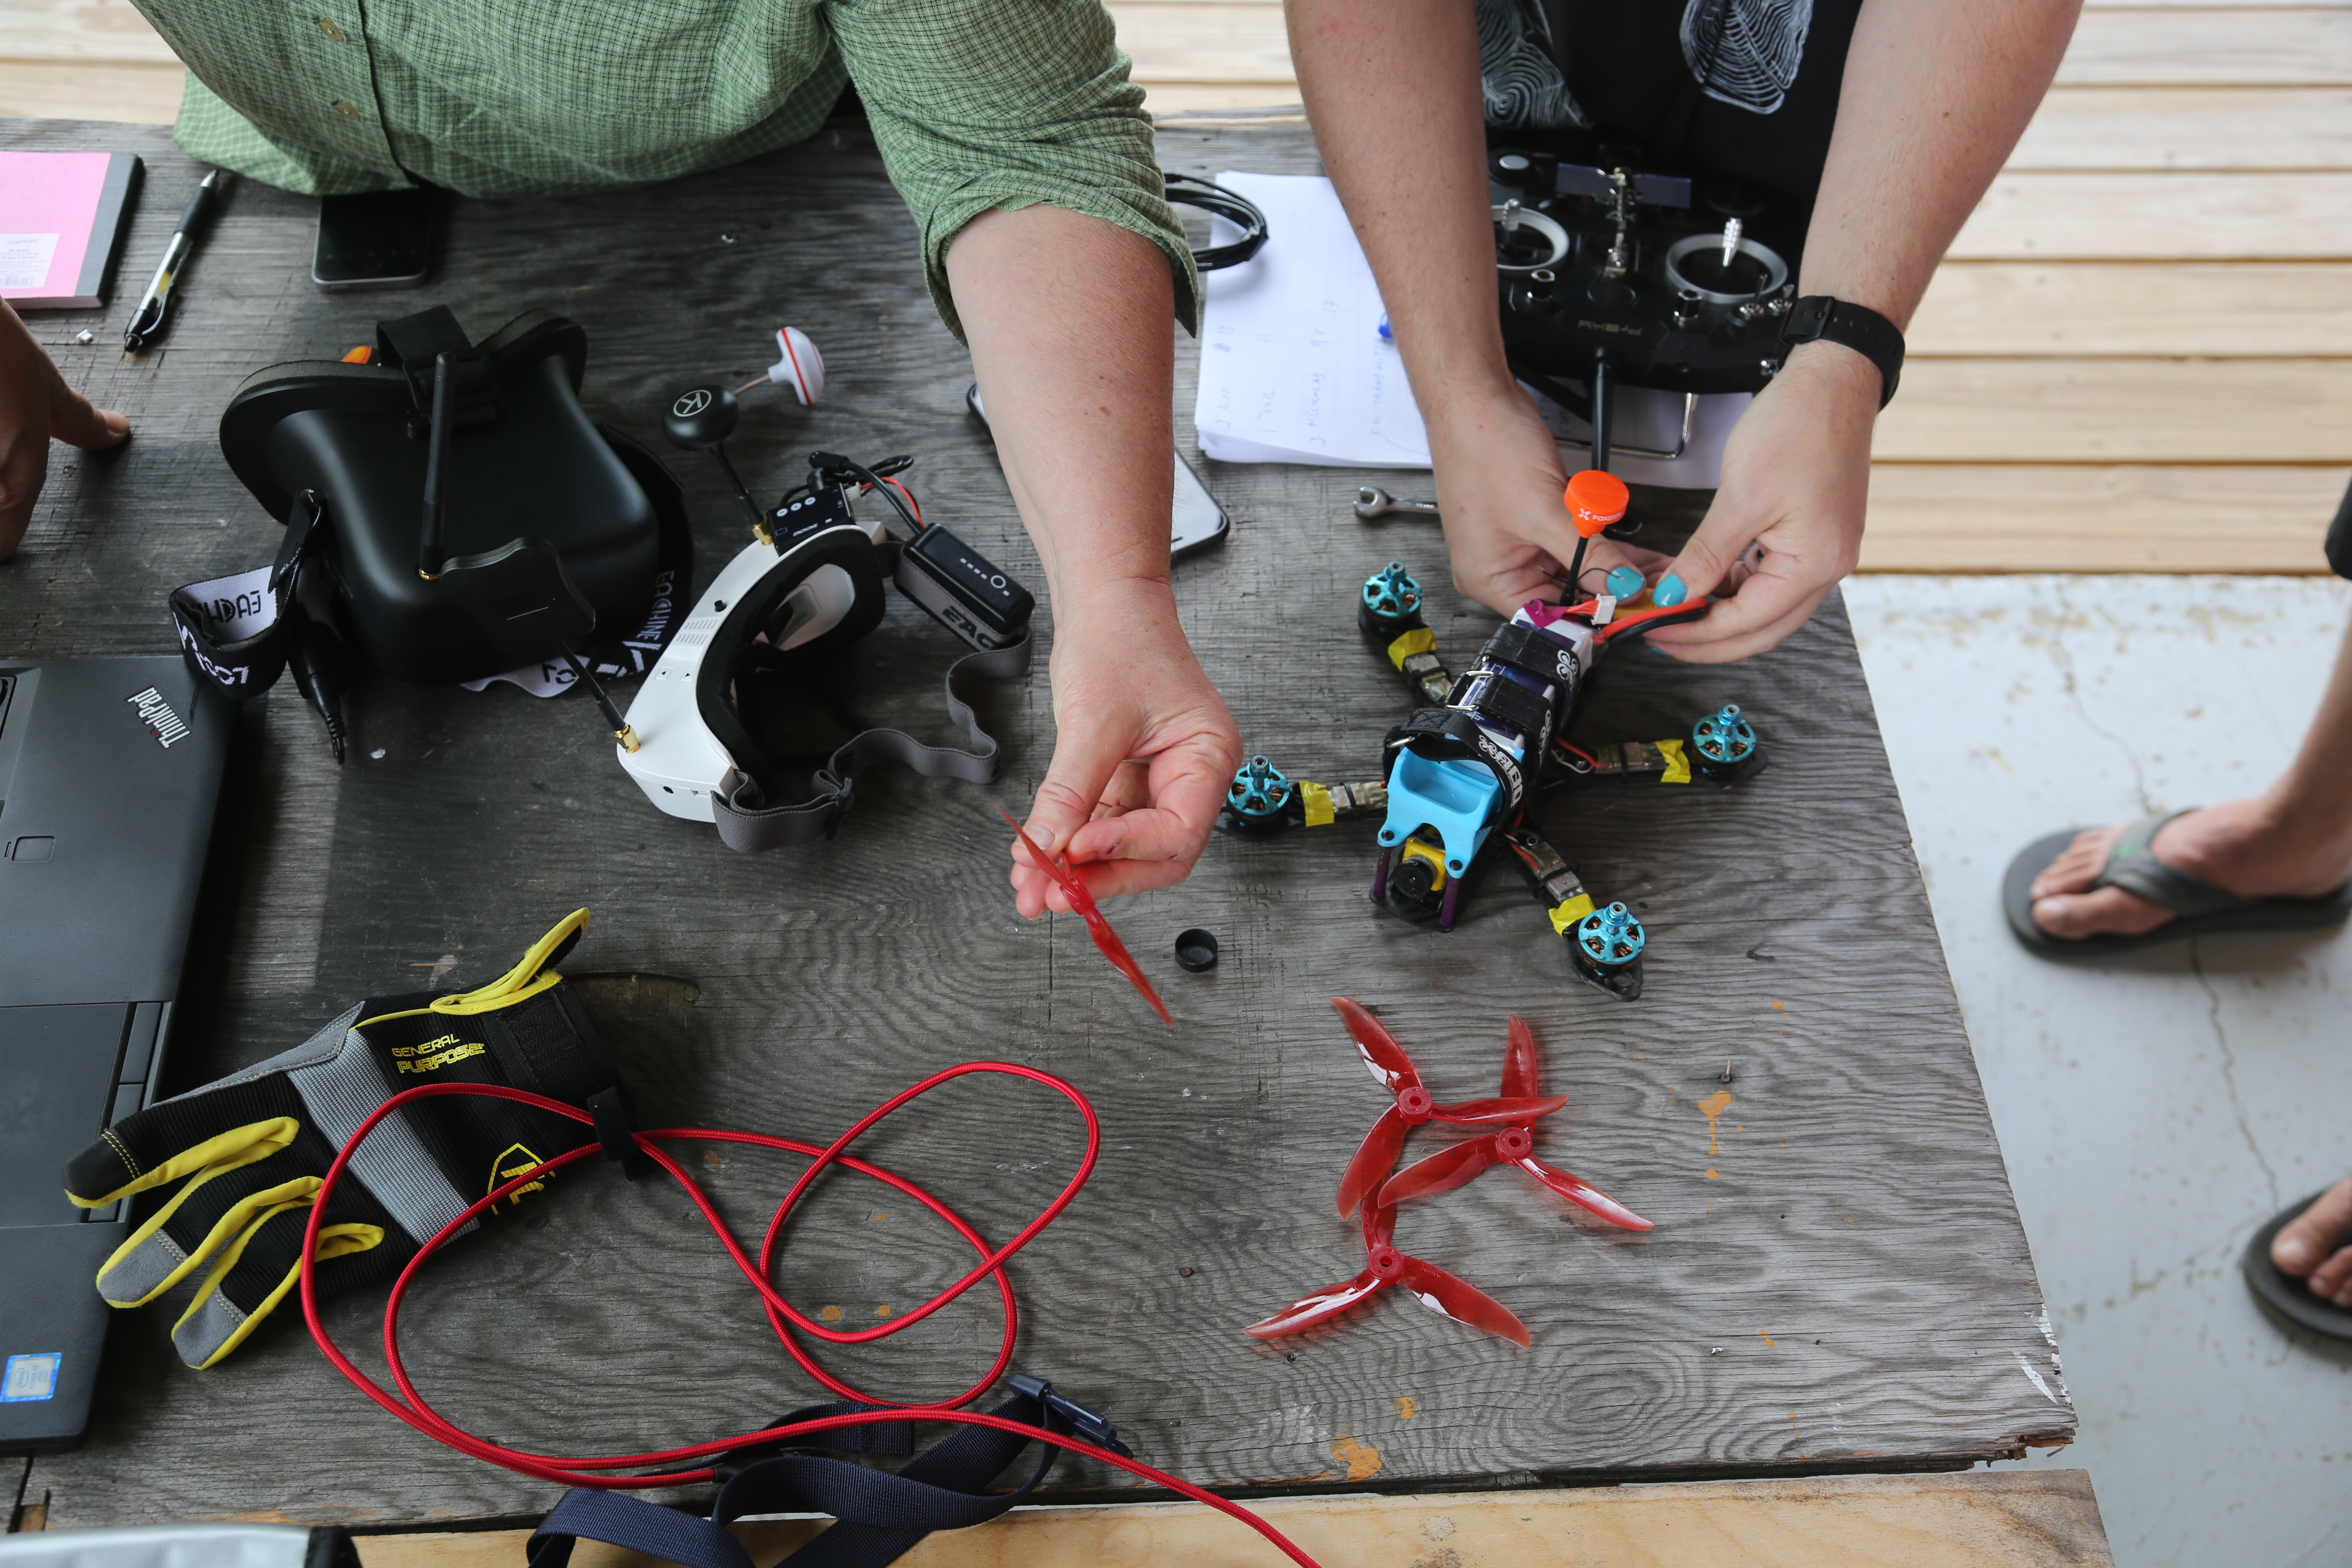 Propeller Upgrade Demo at the Aerial Actor Drone Workshop